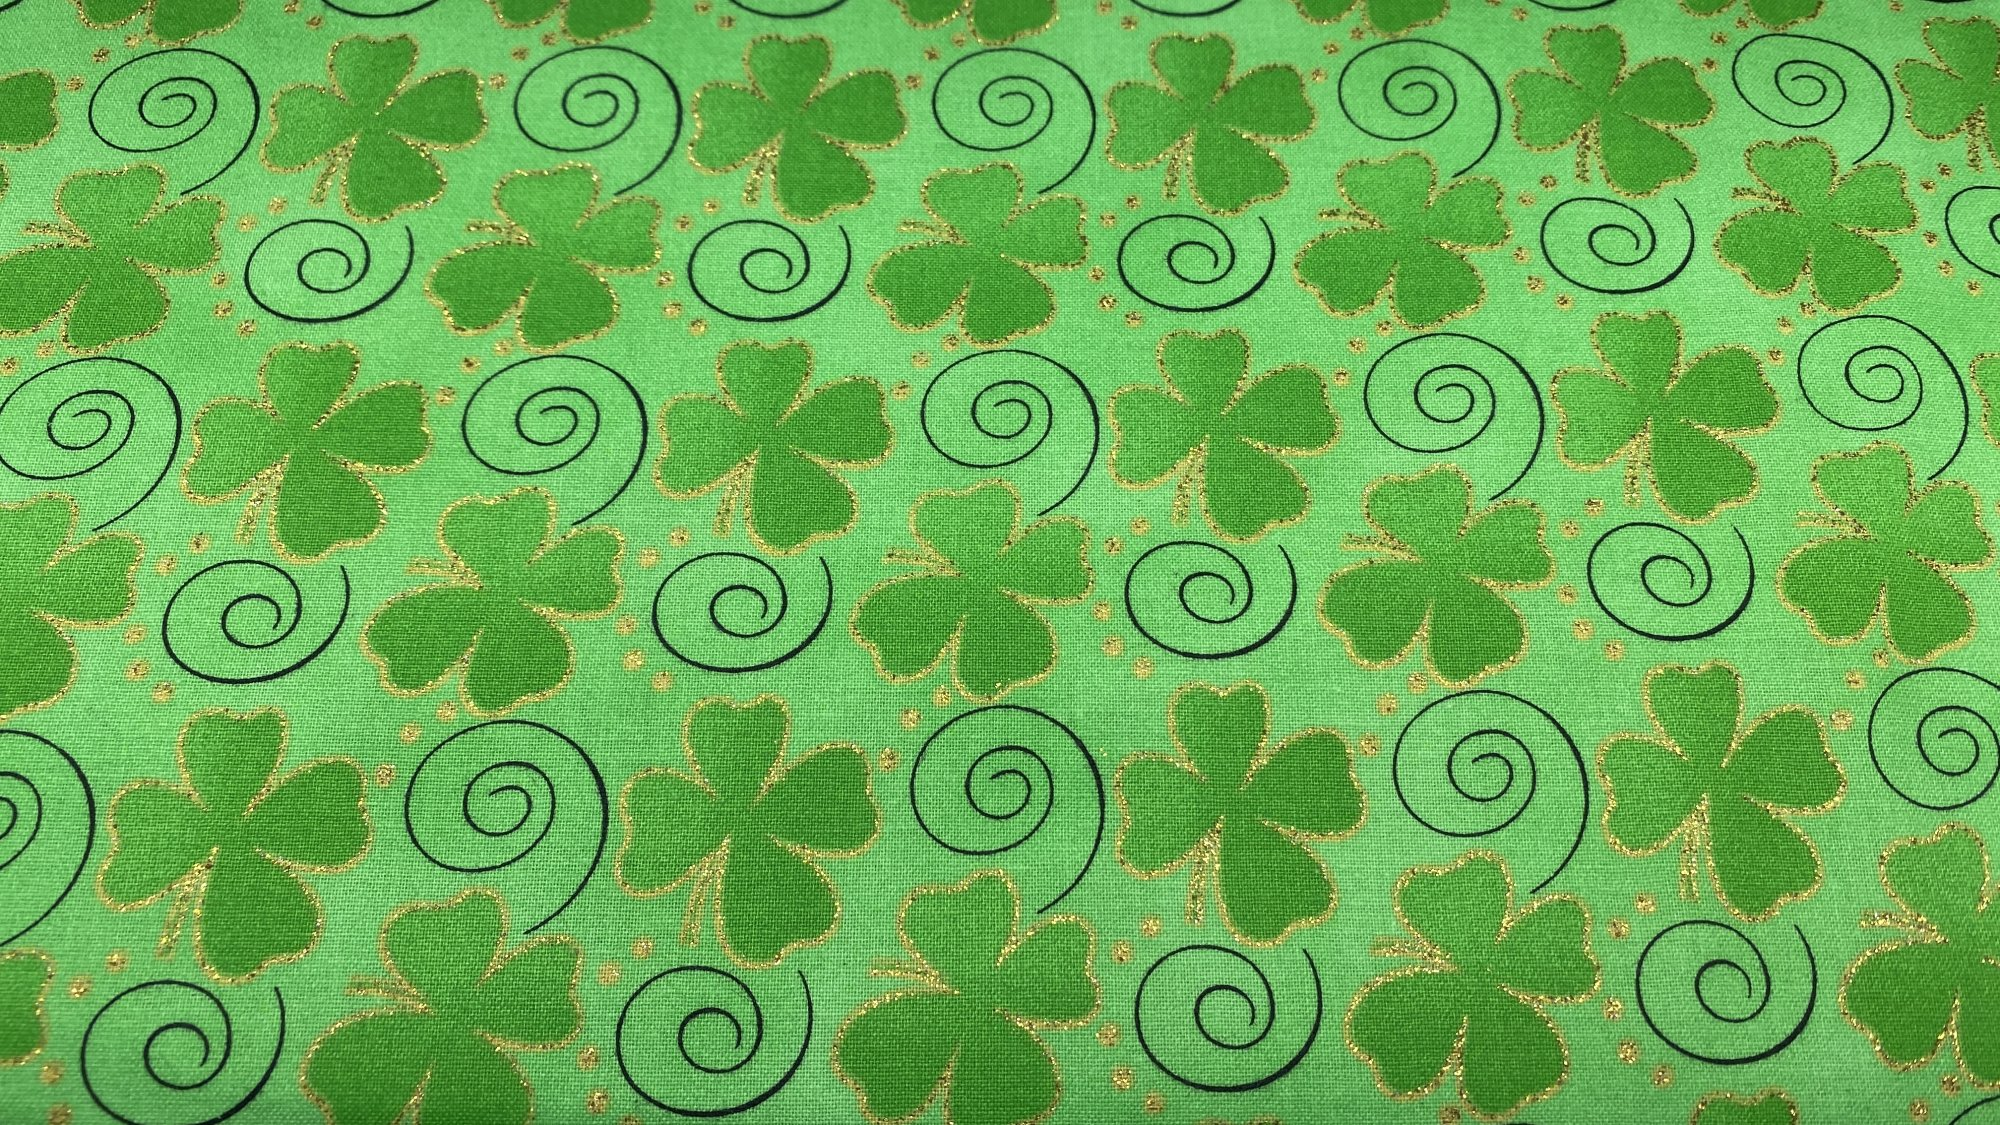 St. Patrick's Day Green Clovers on Green